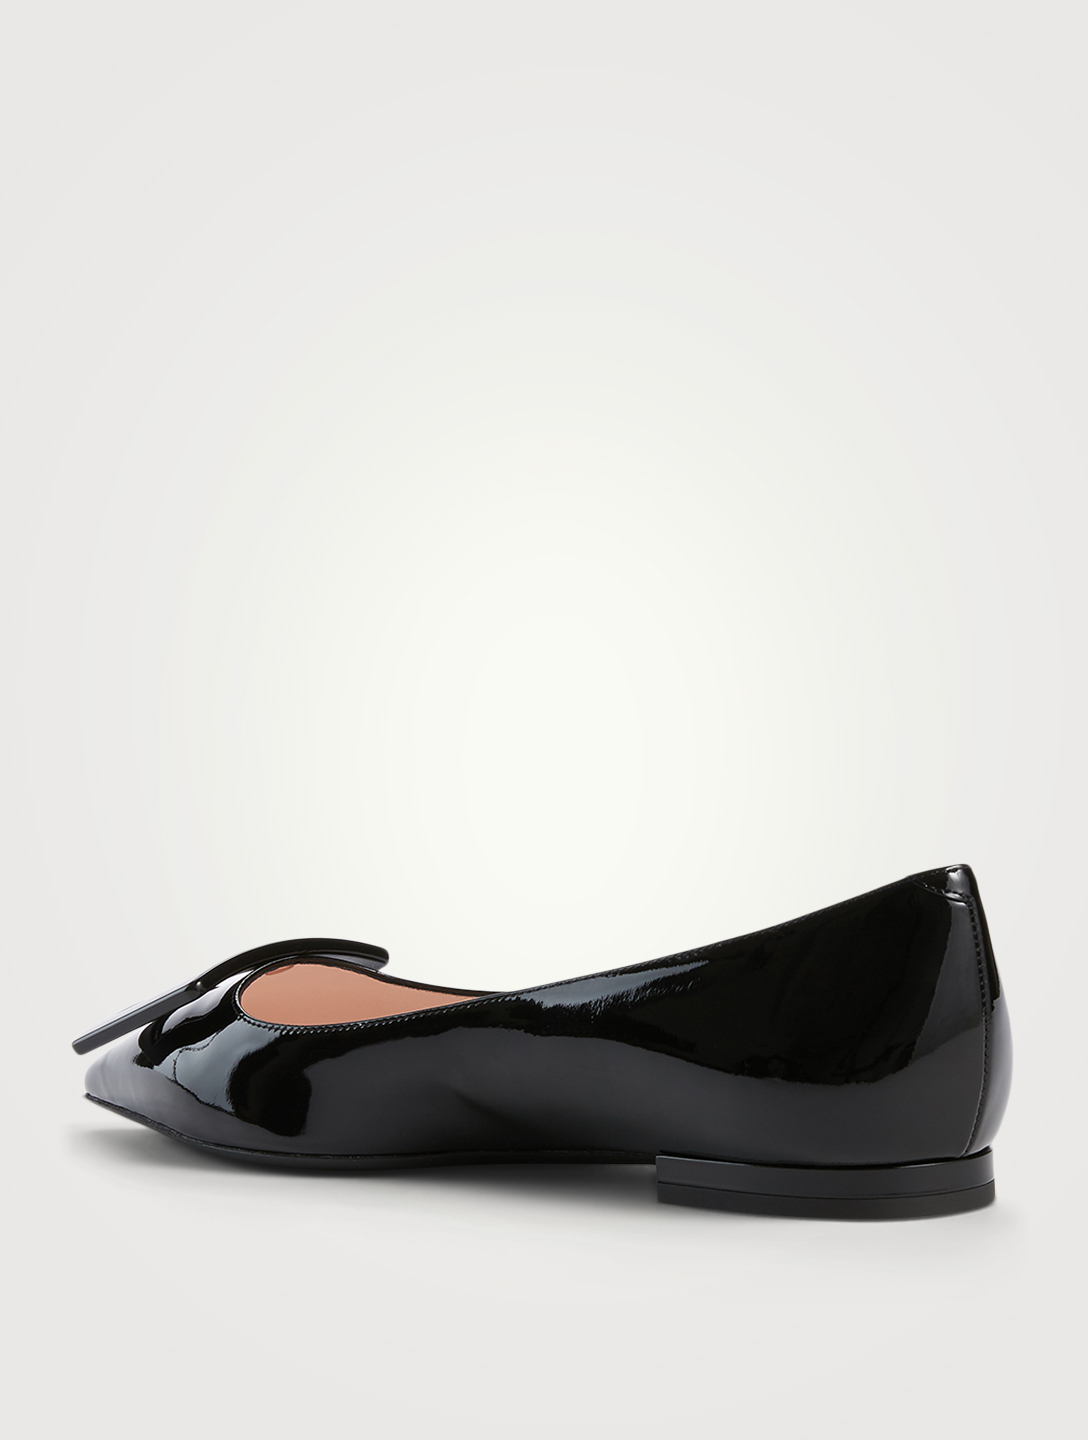 ROGER VIVIER Gommettine 05 Patent Leather Ballet Flats Women's Black